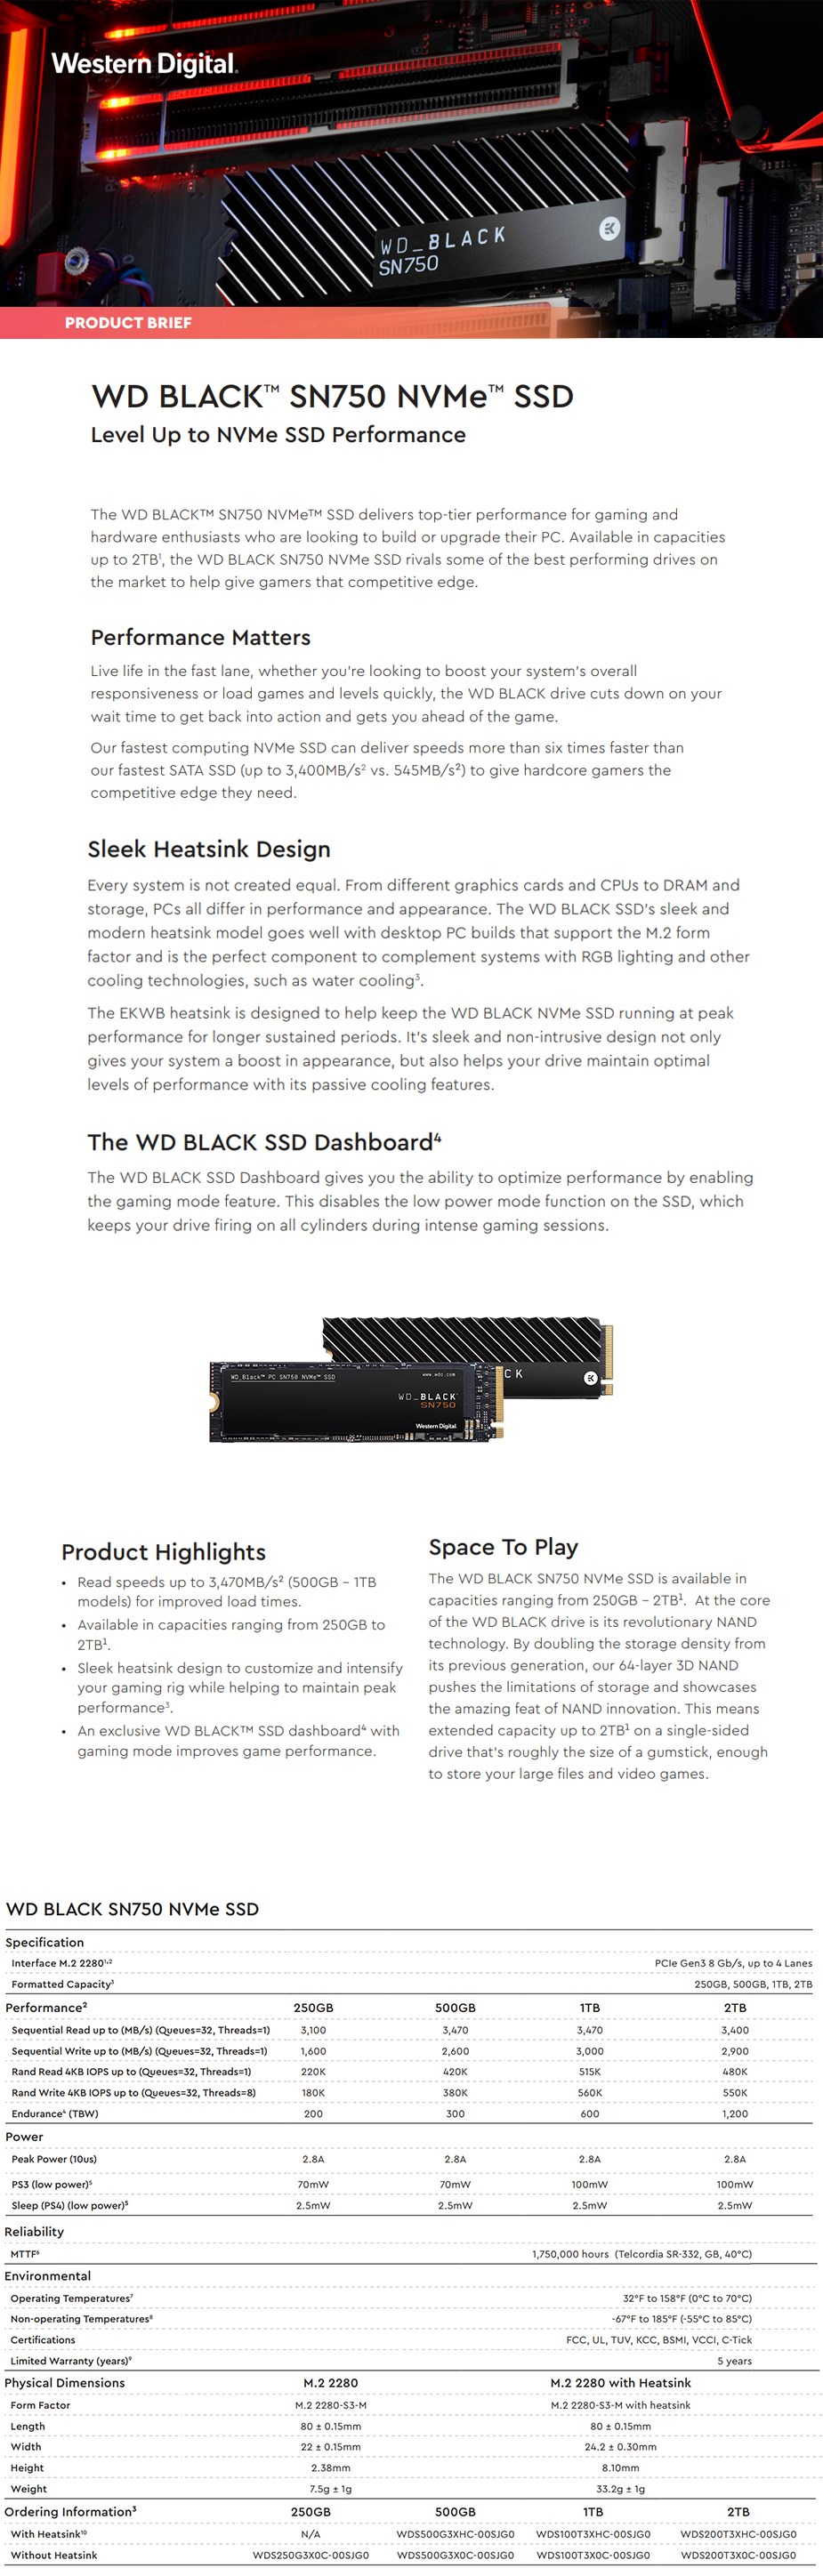 A large marketing image providing additional information about the product WD Black SN750 500GB 3D NAND NVMe M.2 SSD - Additional alt info not provided